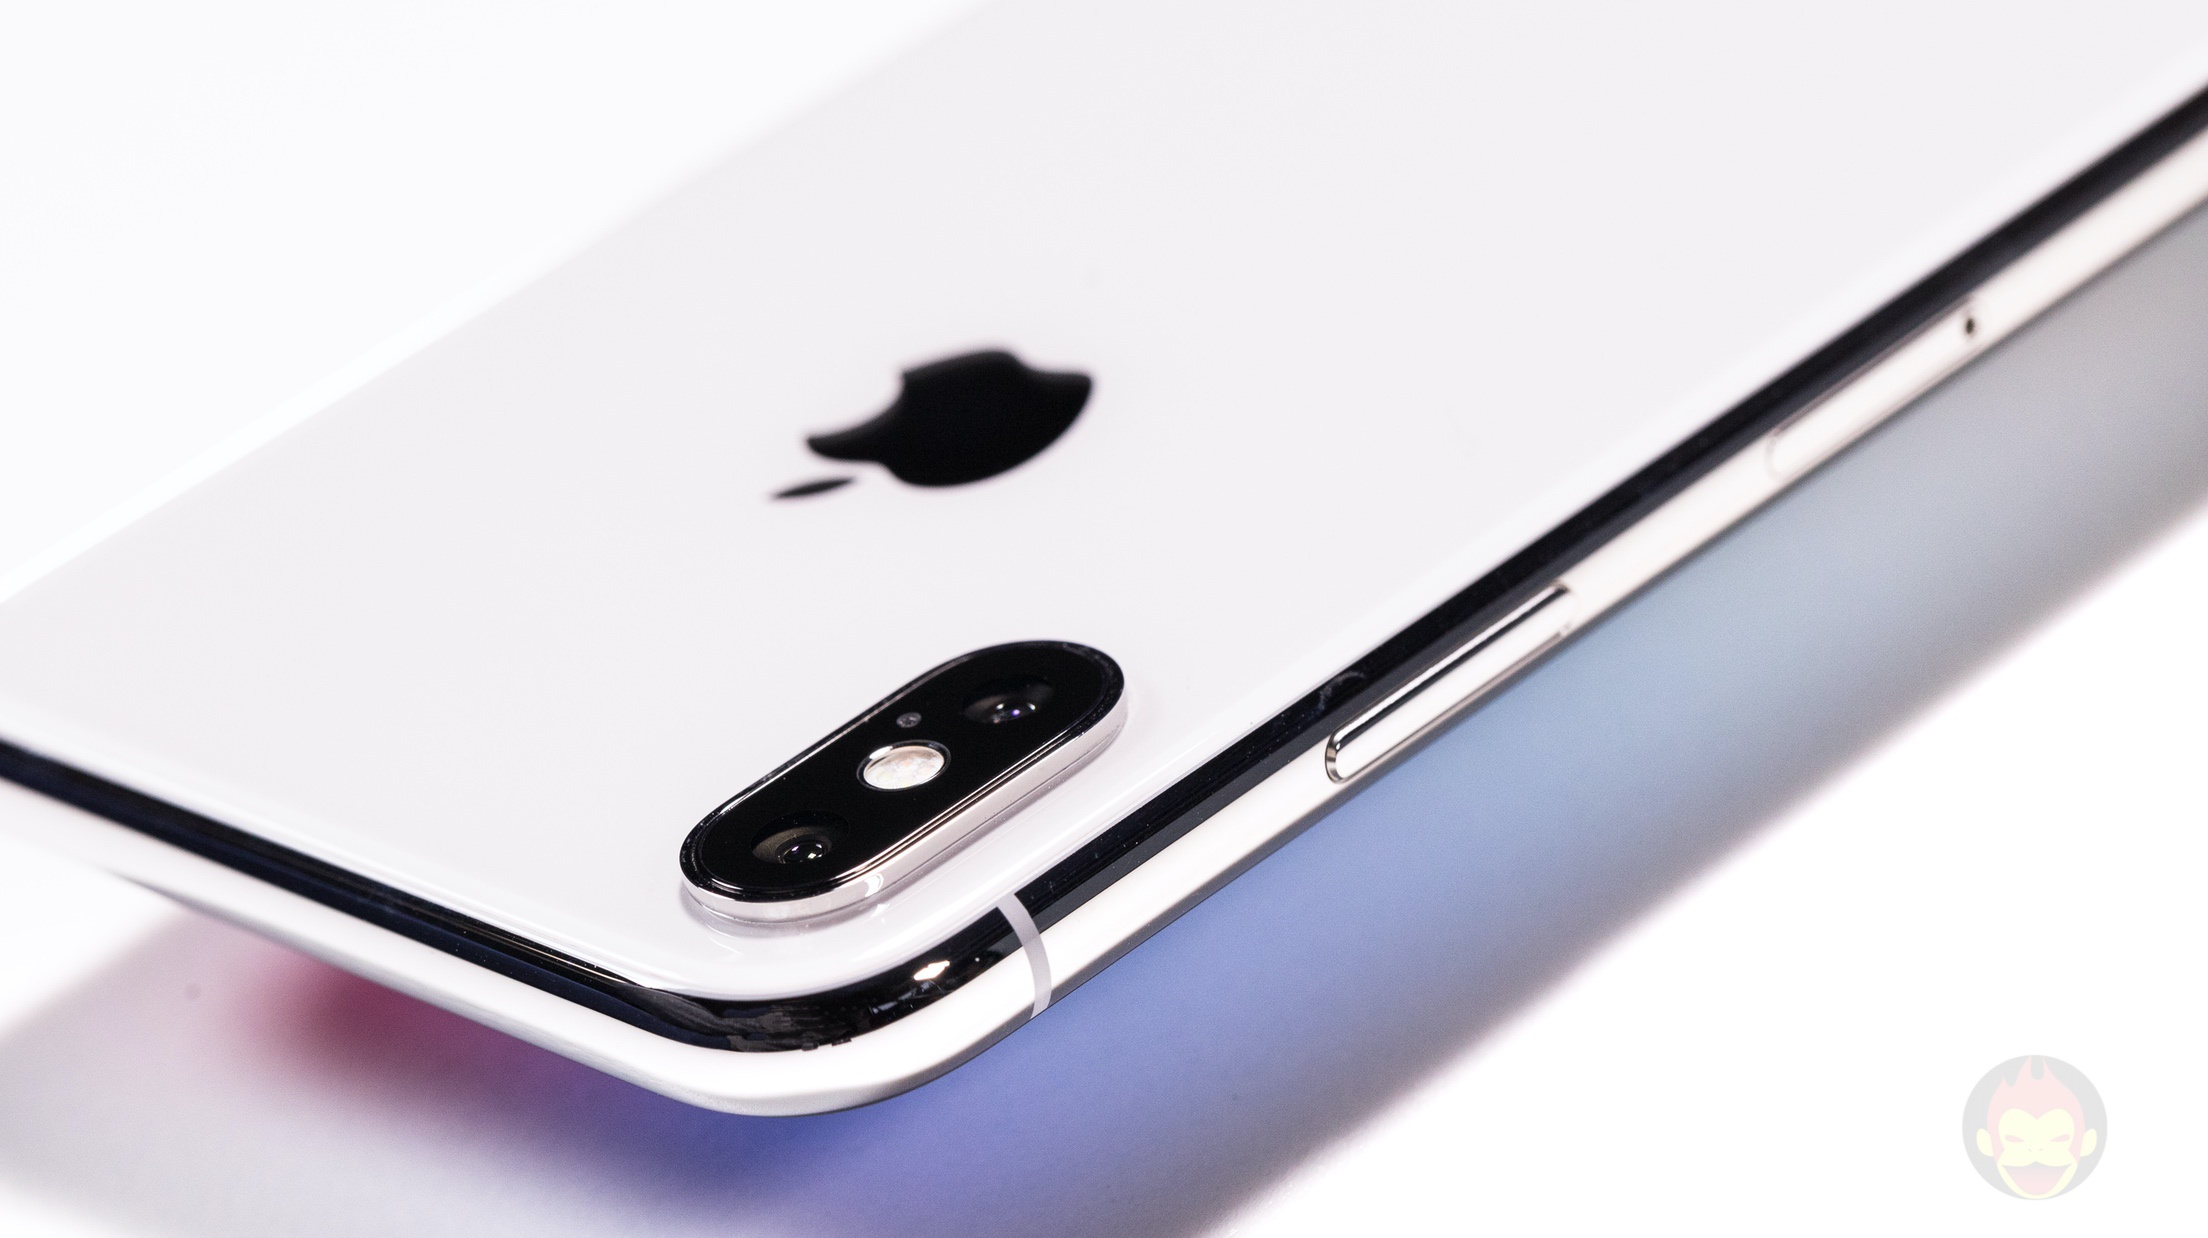 iPhone-X-Silver-Review-001.jpg